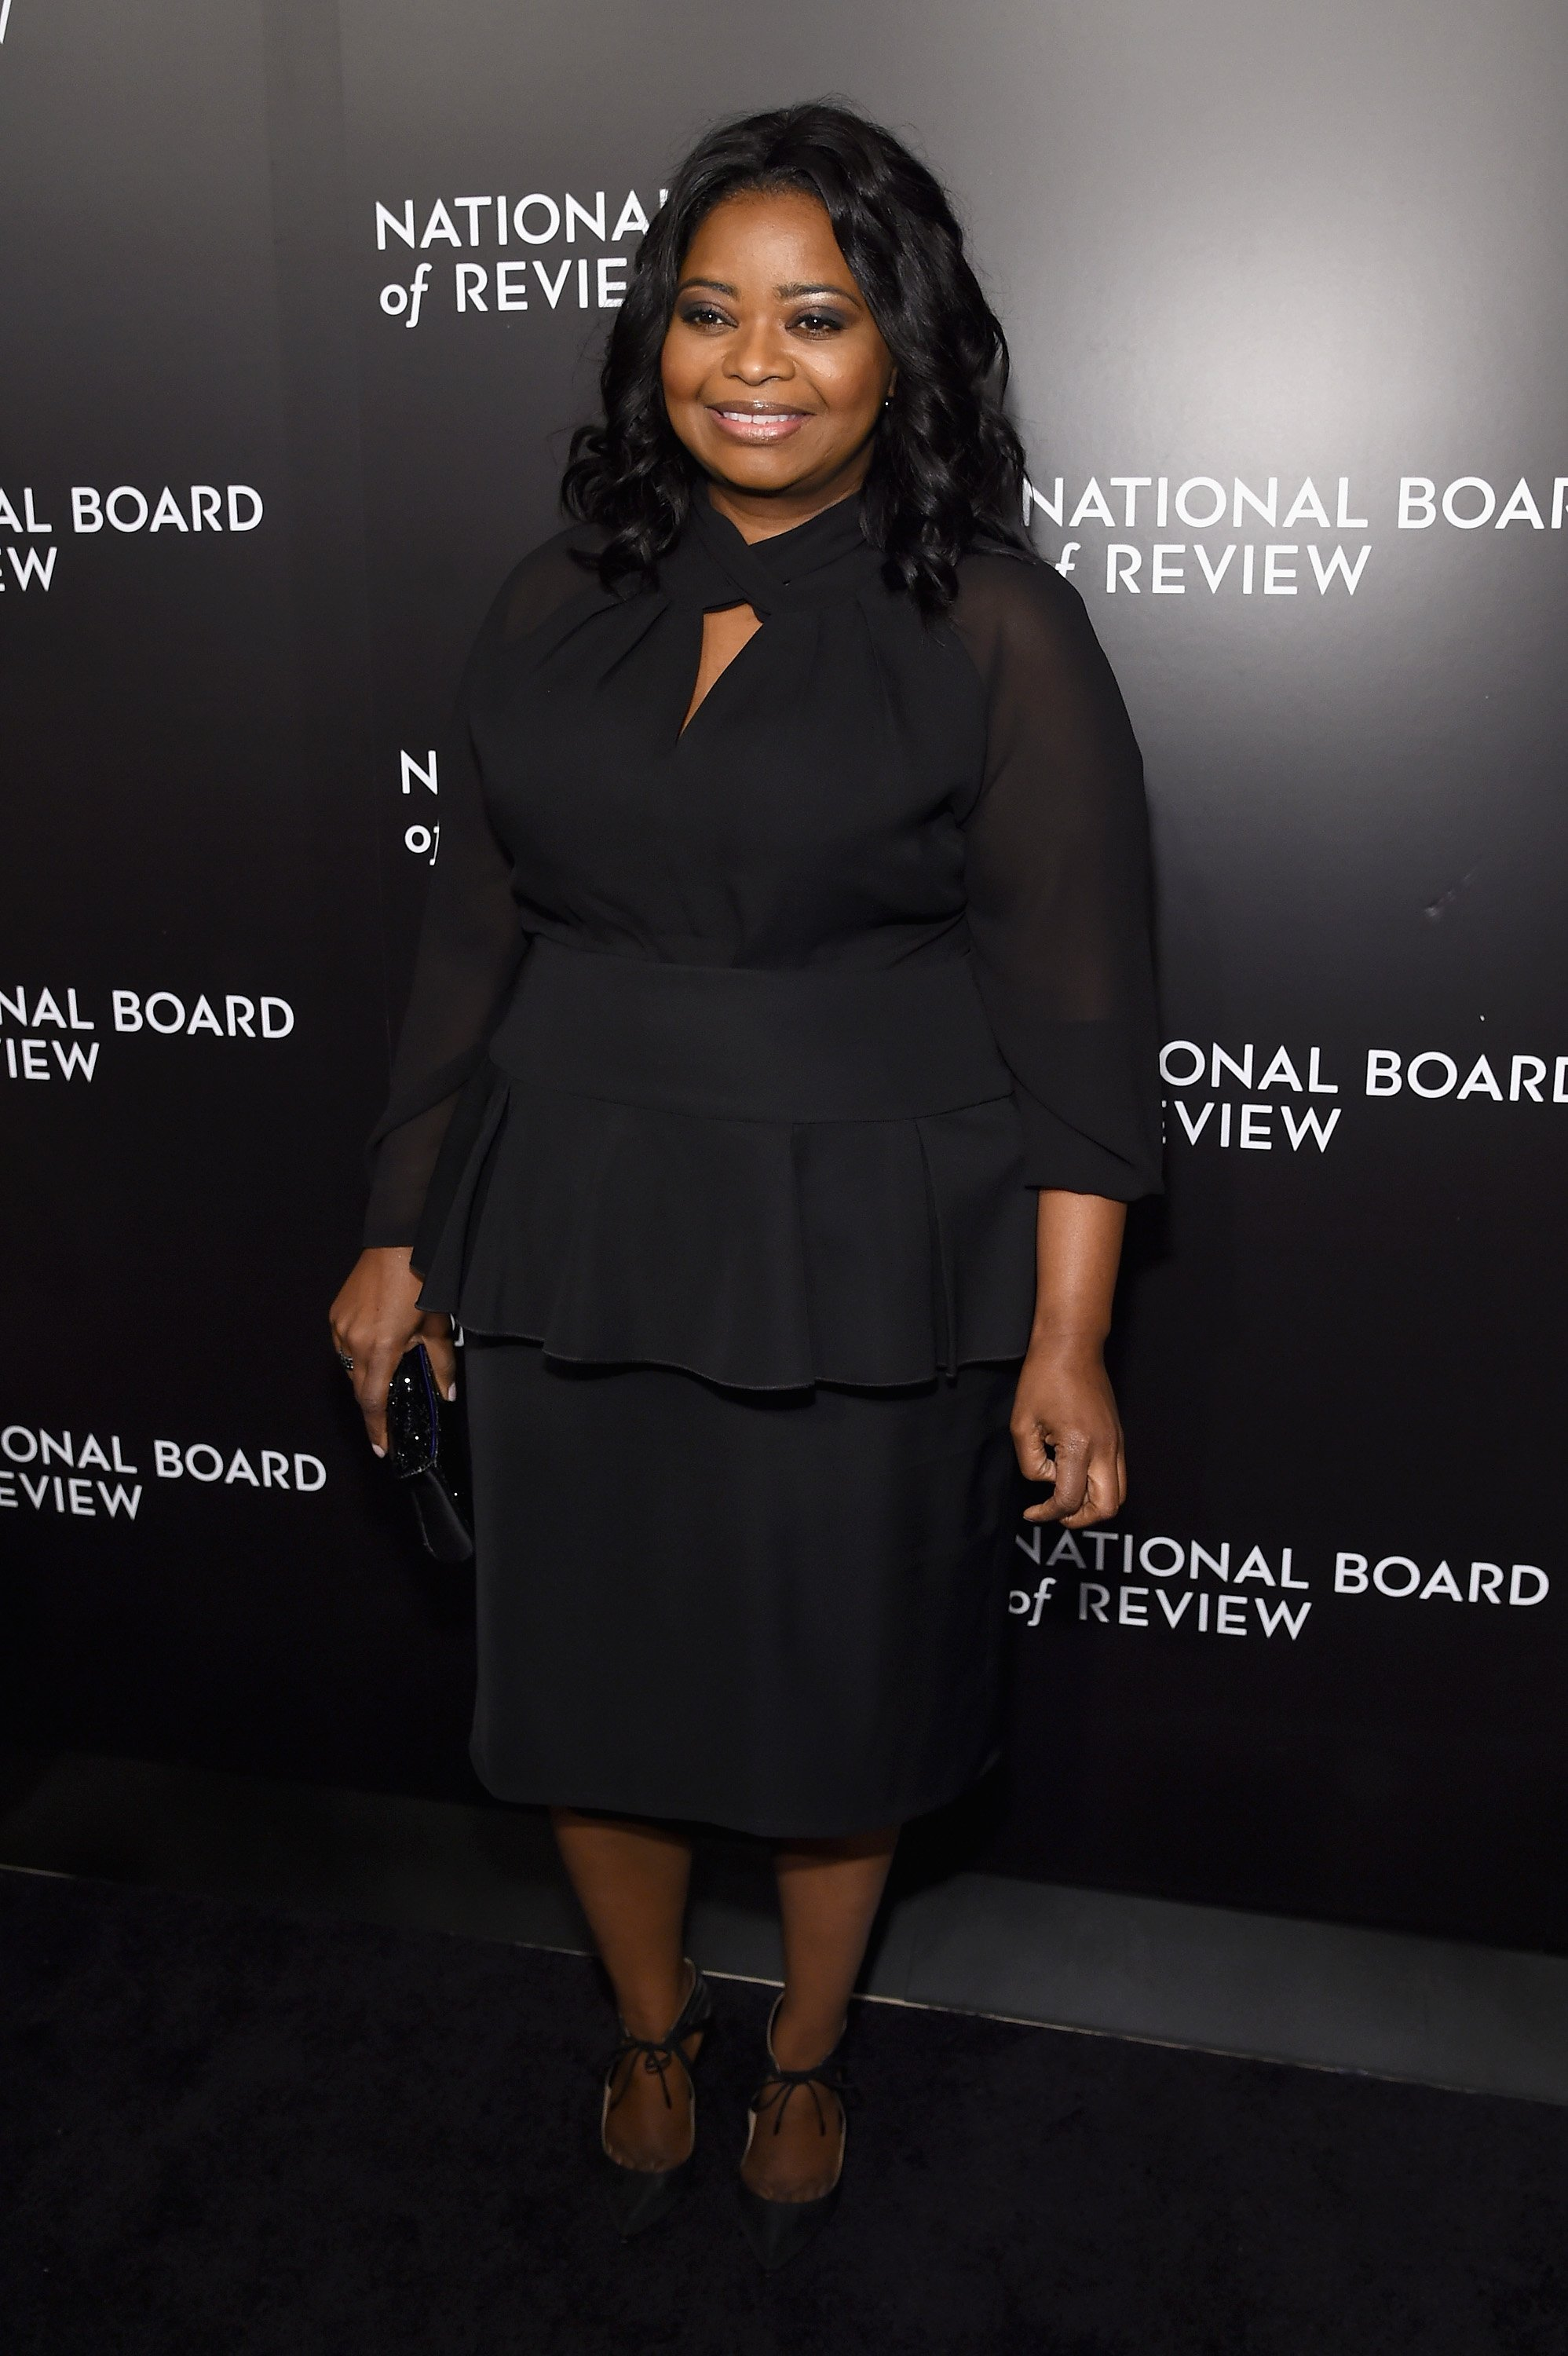 Octavia Spencer attends the 2016 National Board of Review Gala at Cipriani 42nd Street on January 4, 2017 in New York City